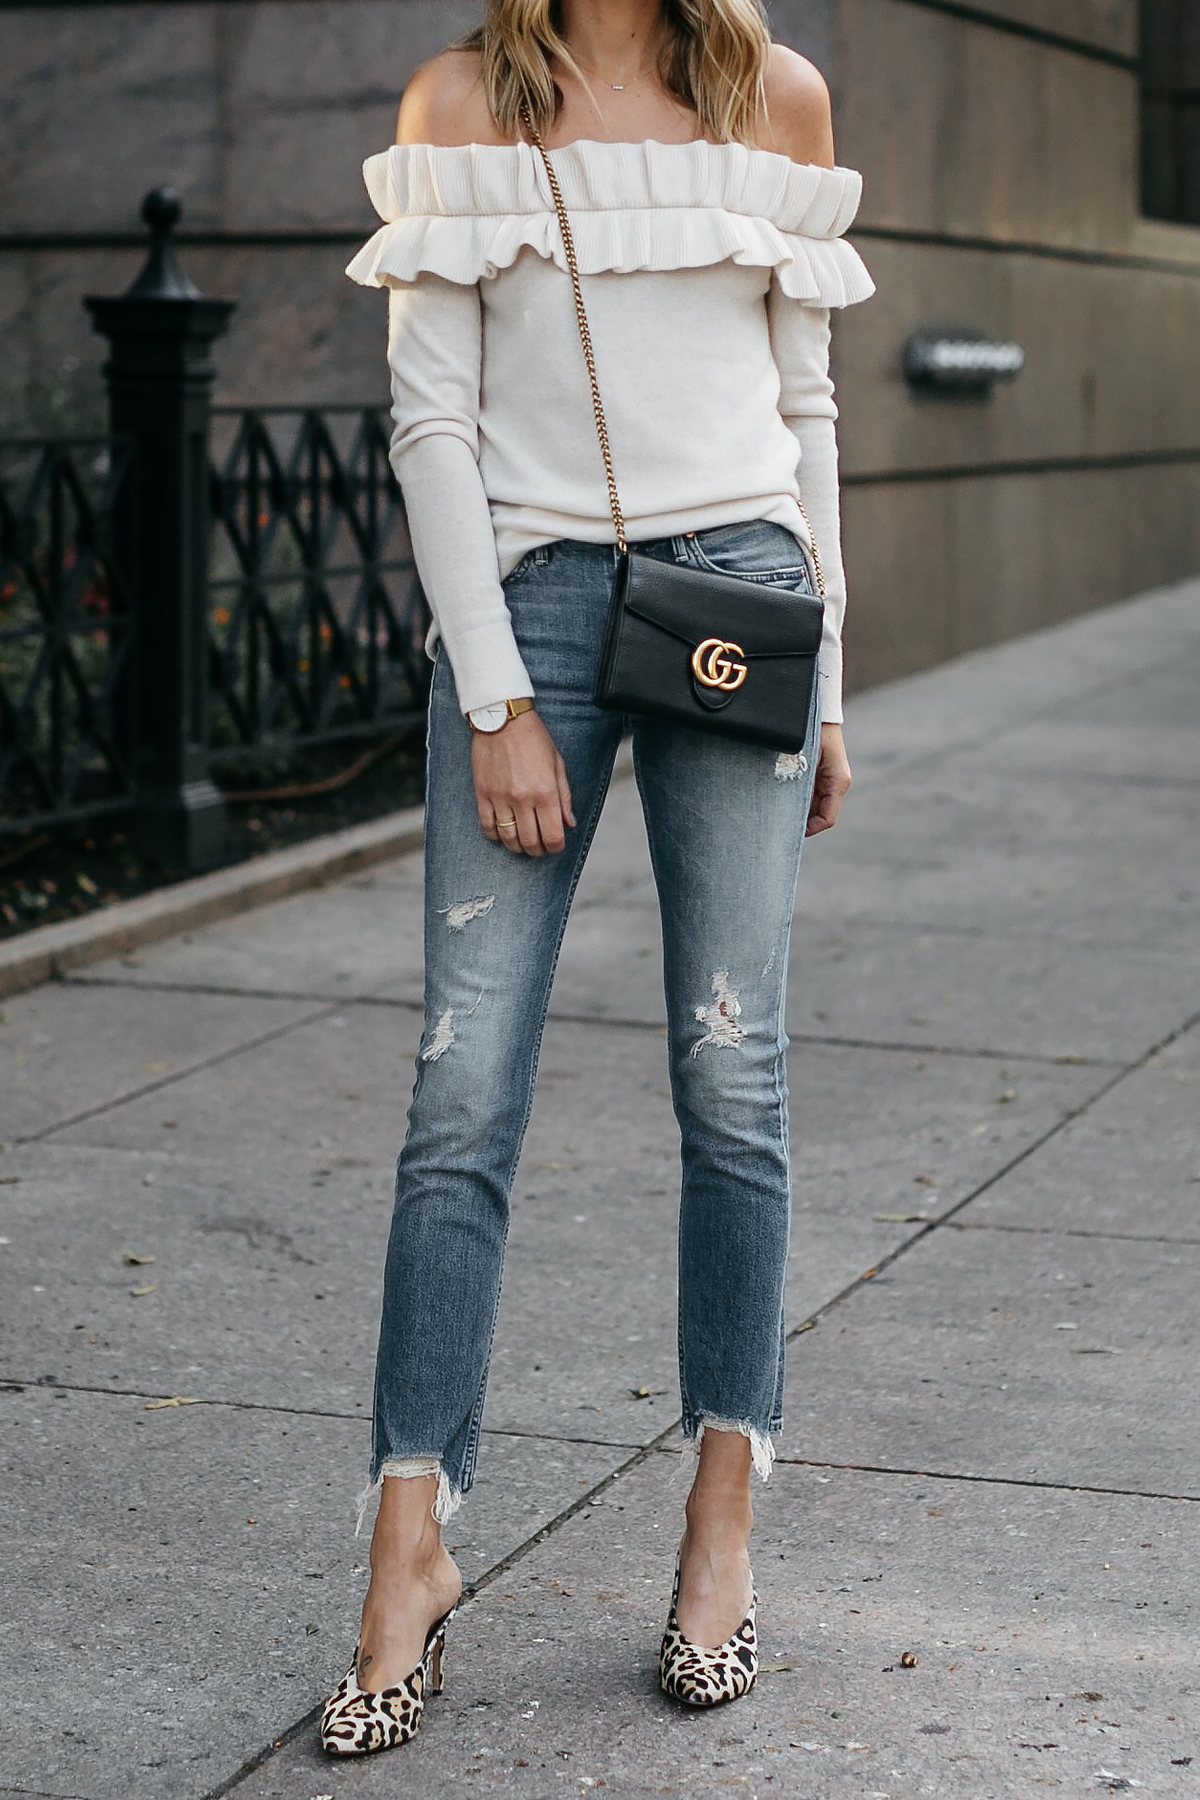 Club Monaco Ruffle Off-the-shoulder sweater Mother denim ripped jeans leopard heels gucci marmont handbag Fashion Jackson Dallas Blogger Fashion Blogger Street Style